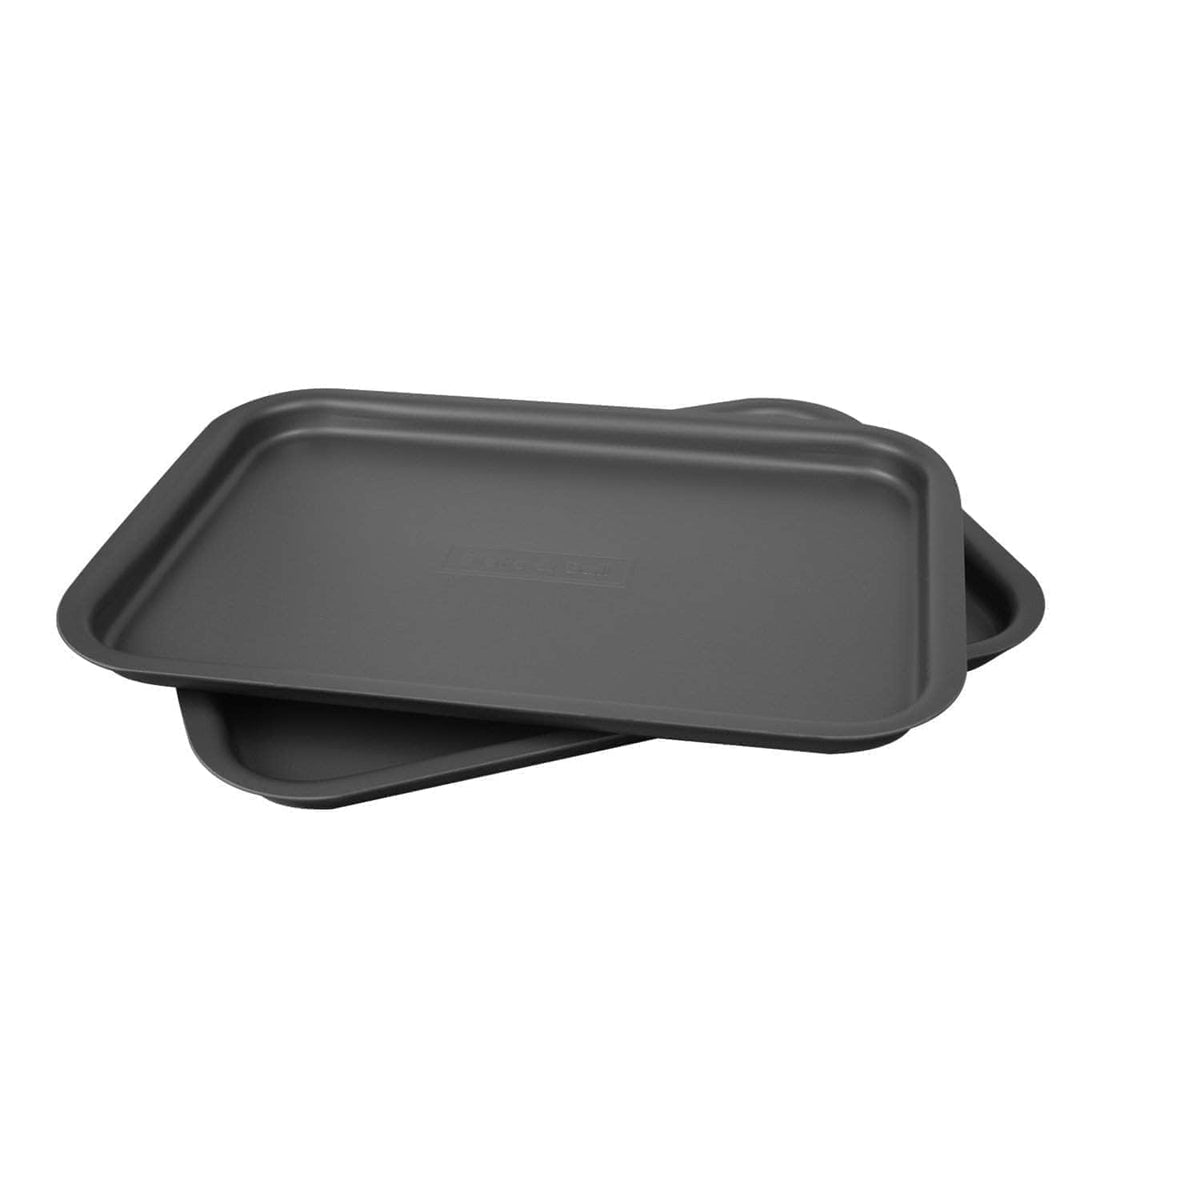 'Fits on runners' baking tray for use with Aga range cookers 'half oven' size Yes I'd like to upgrade to a set of 2 (saves £5 on individual cost) / Black